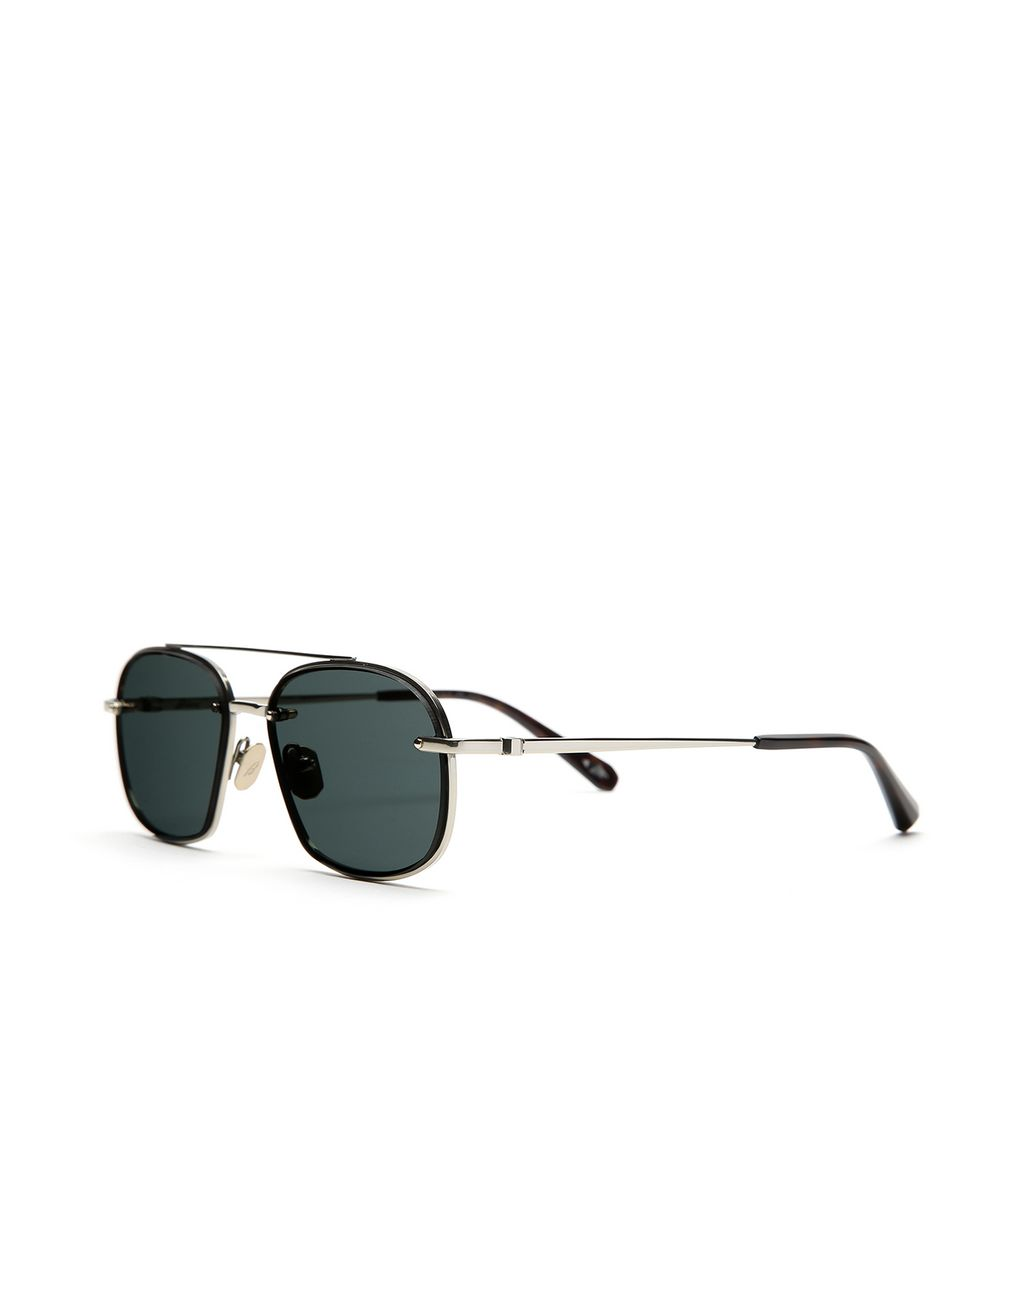 BRIONI Havana Geometric Shape Sunglasses with Grey Lenses   Sunglasses Man r